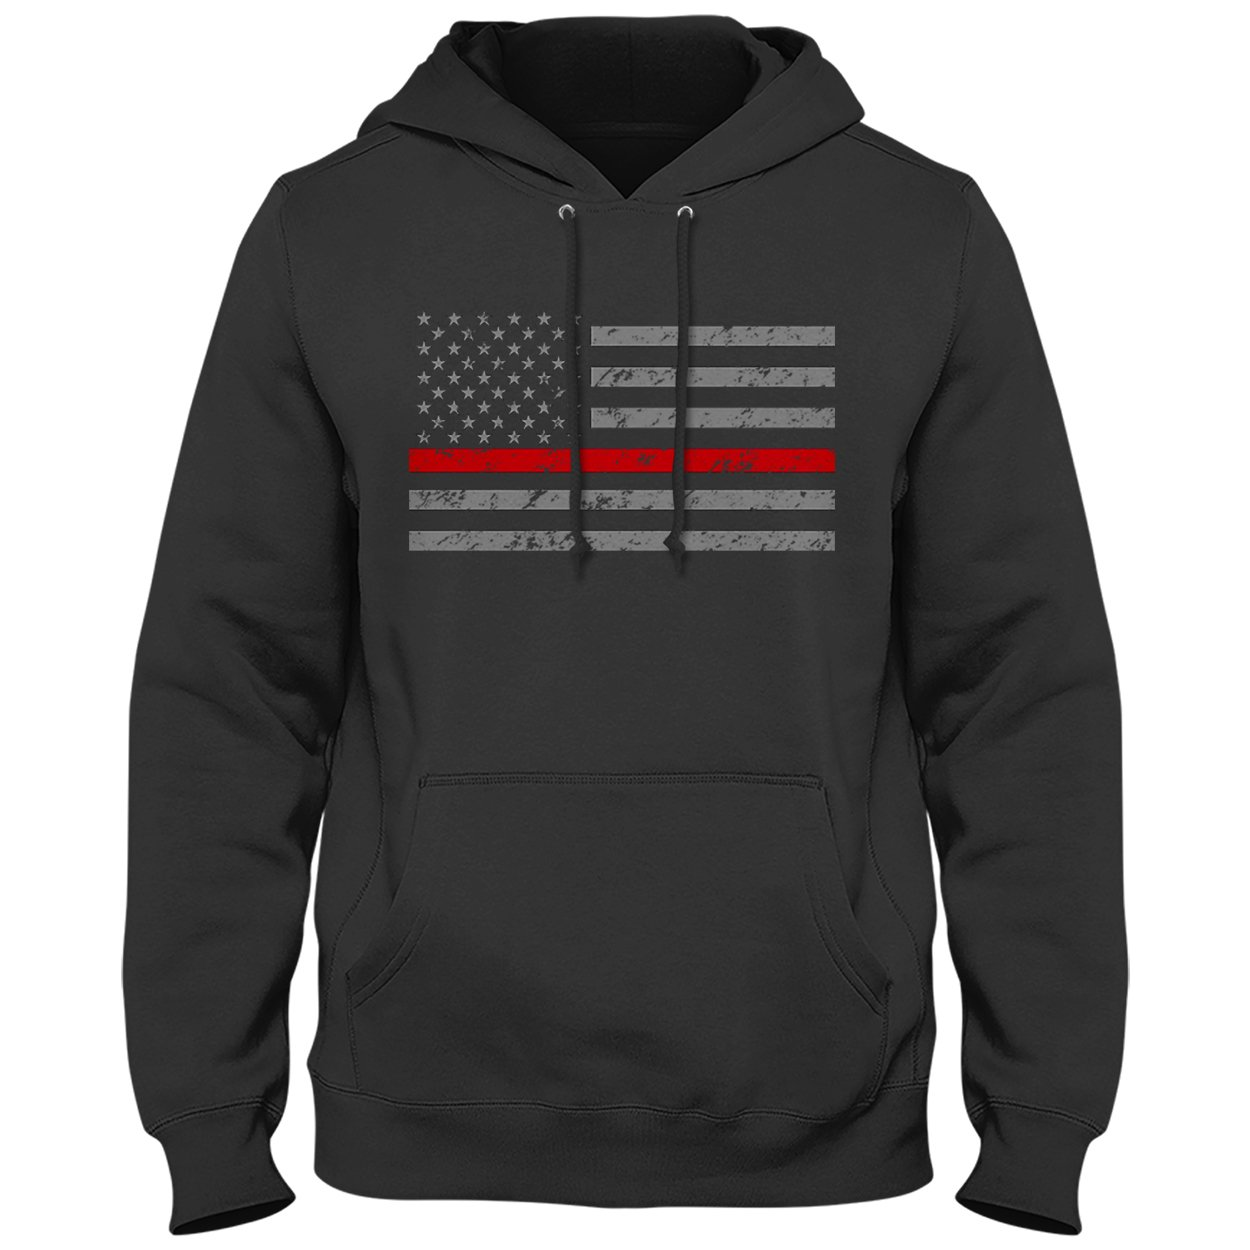 Thin Red Line Horizontal American Flag Firefighter Support Adult Hoodie-FL